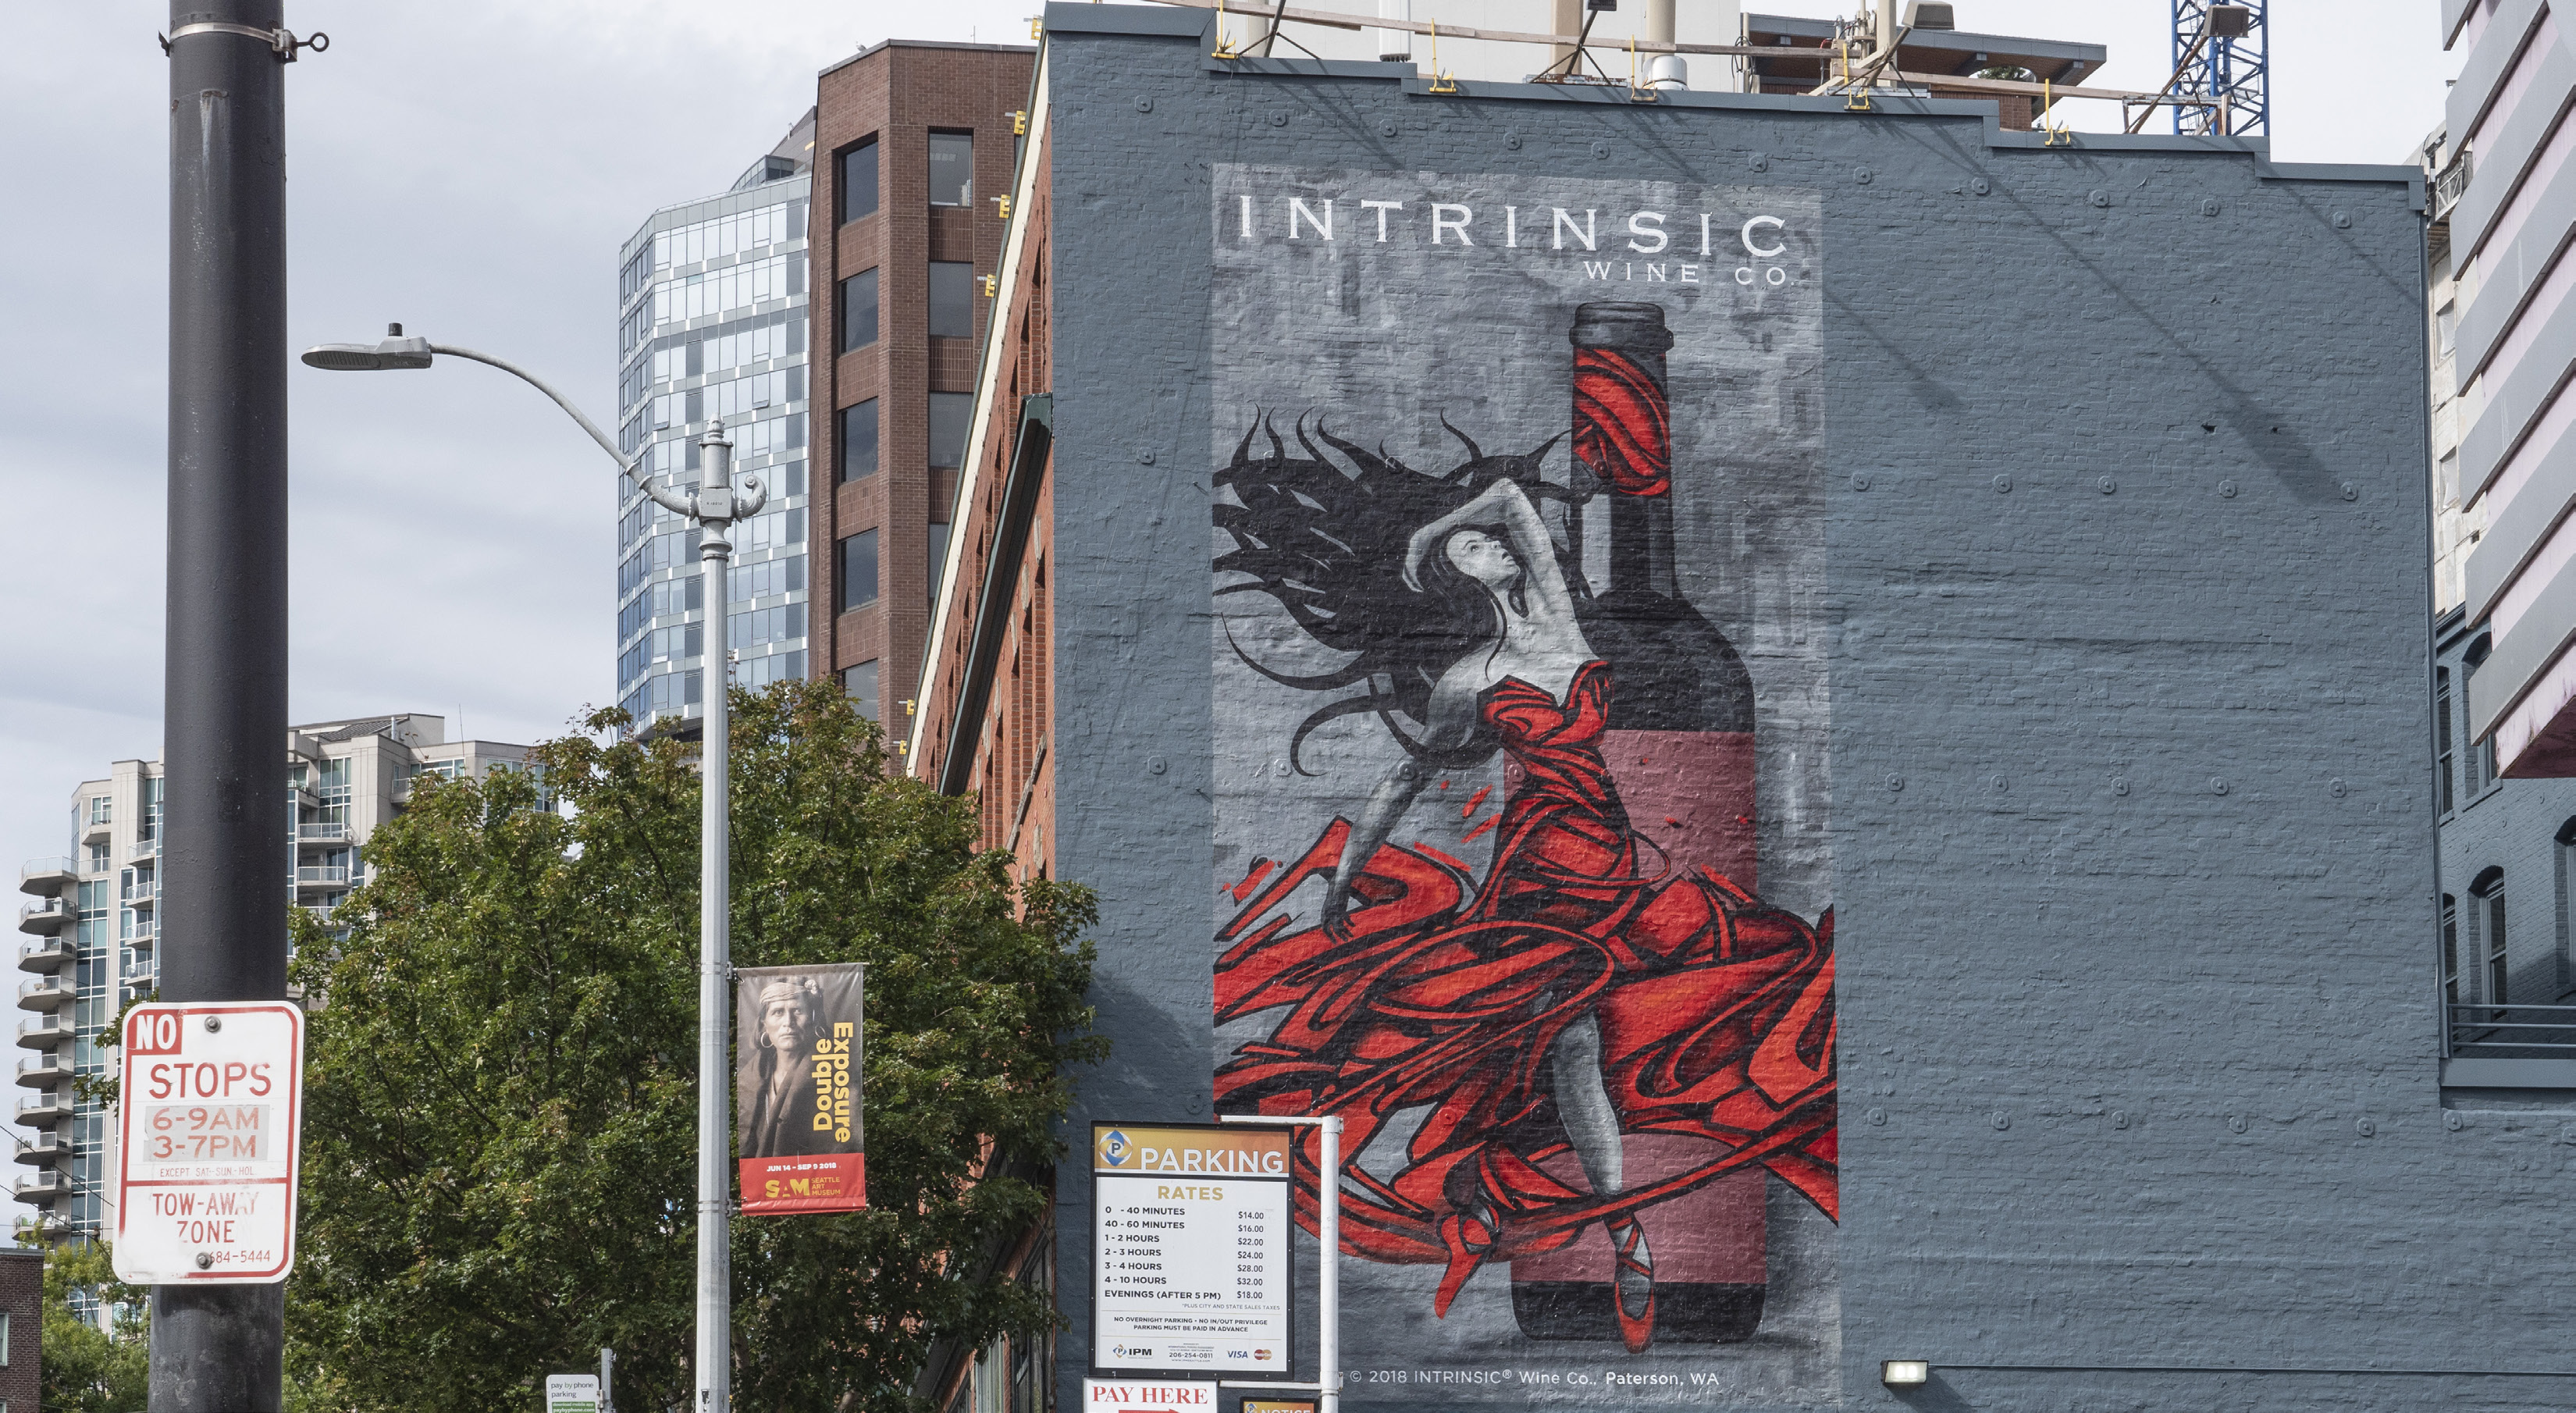 Intrinsic Wine Co.: Painted Wall Puts the 'Art' of Wine on Display